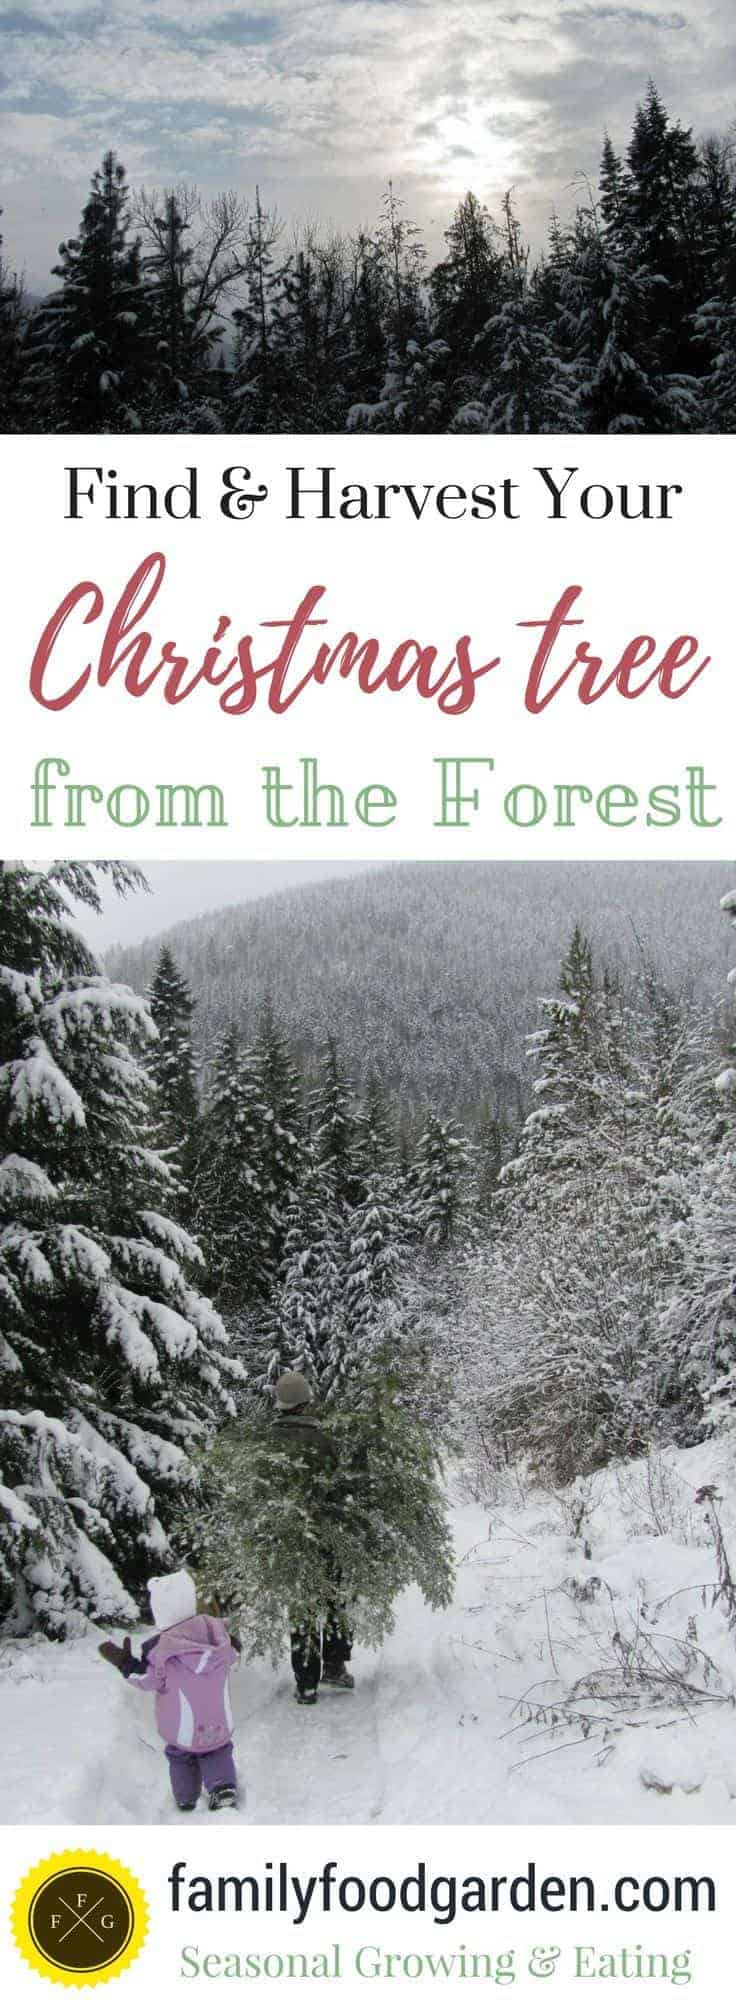 Tips for finding your Christmas tree from the forest